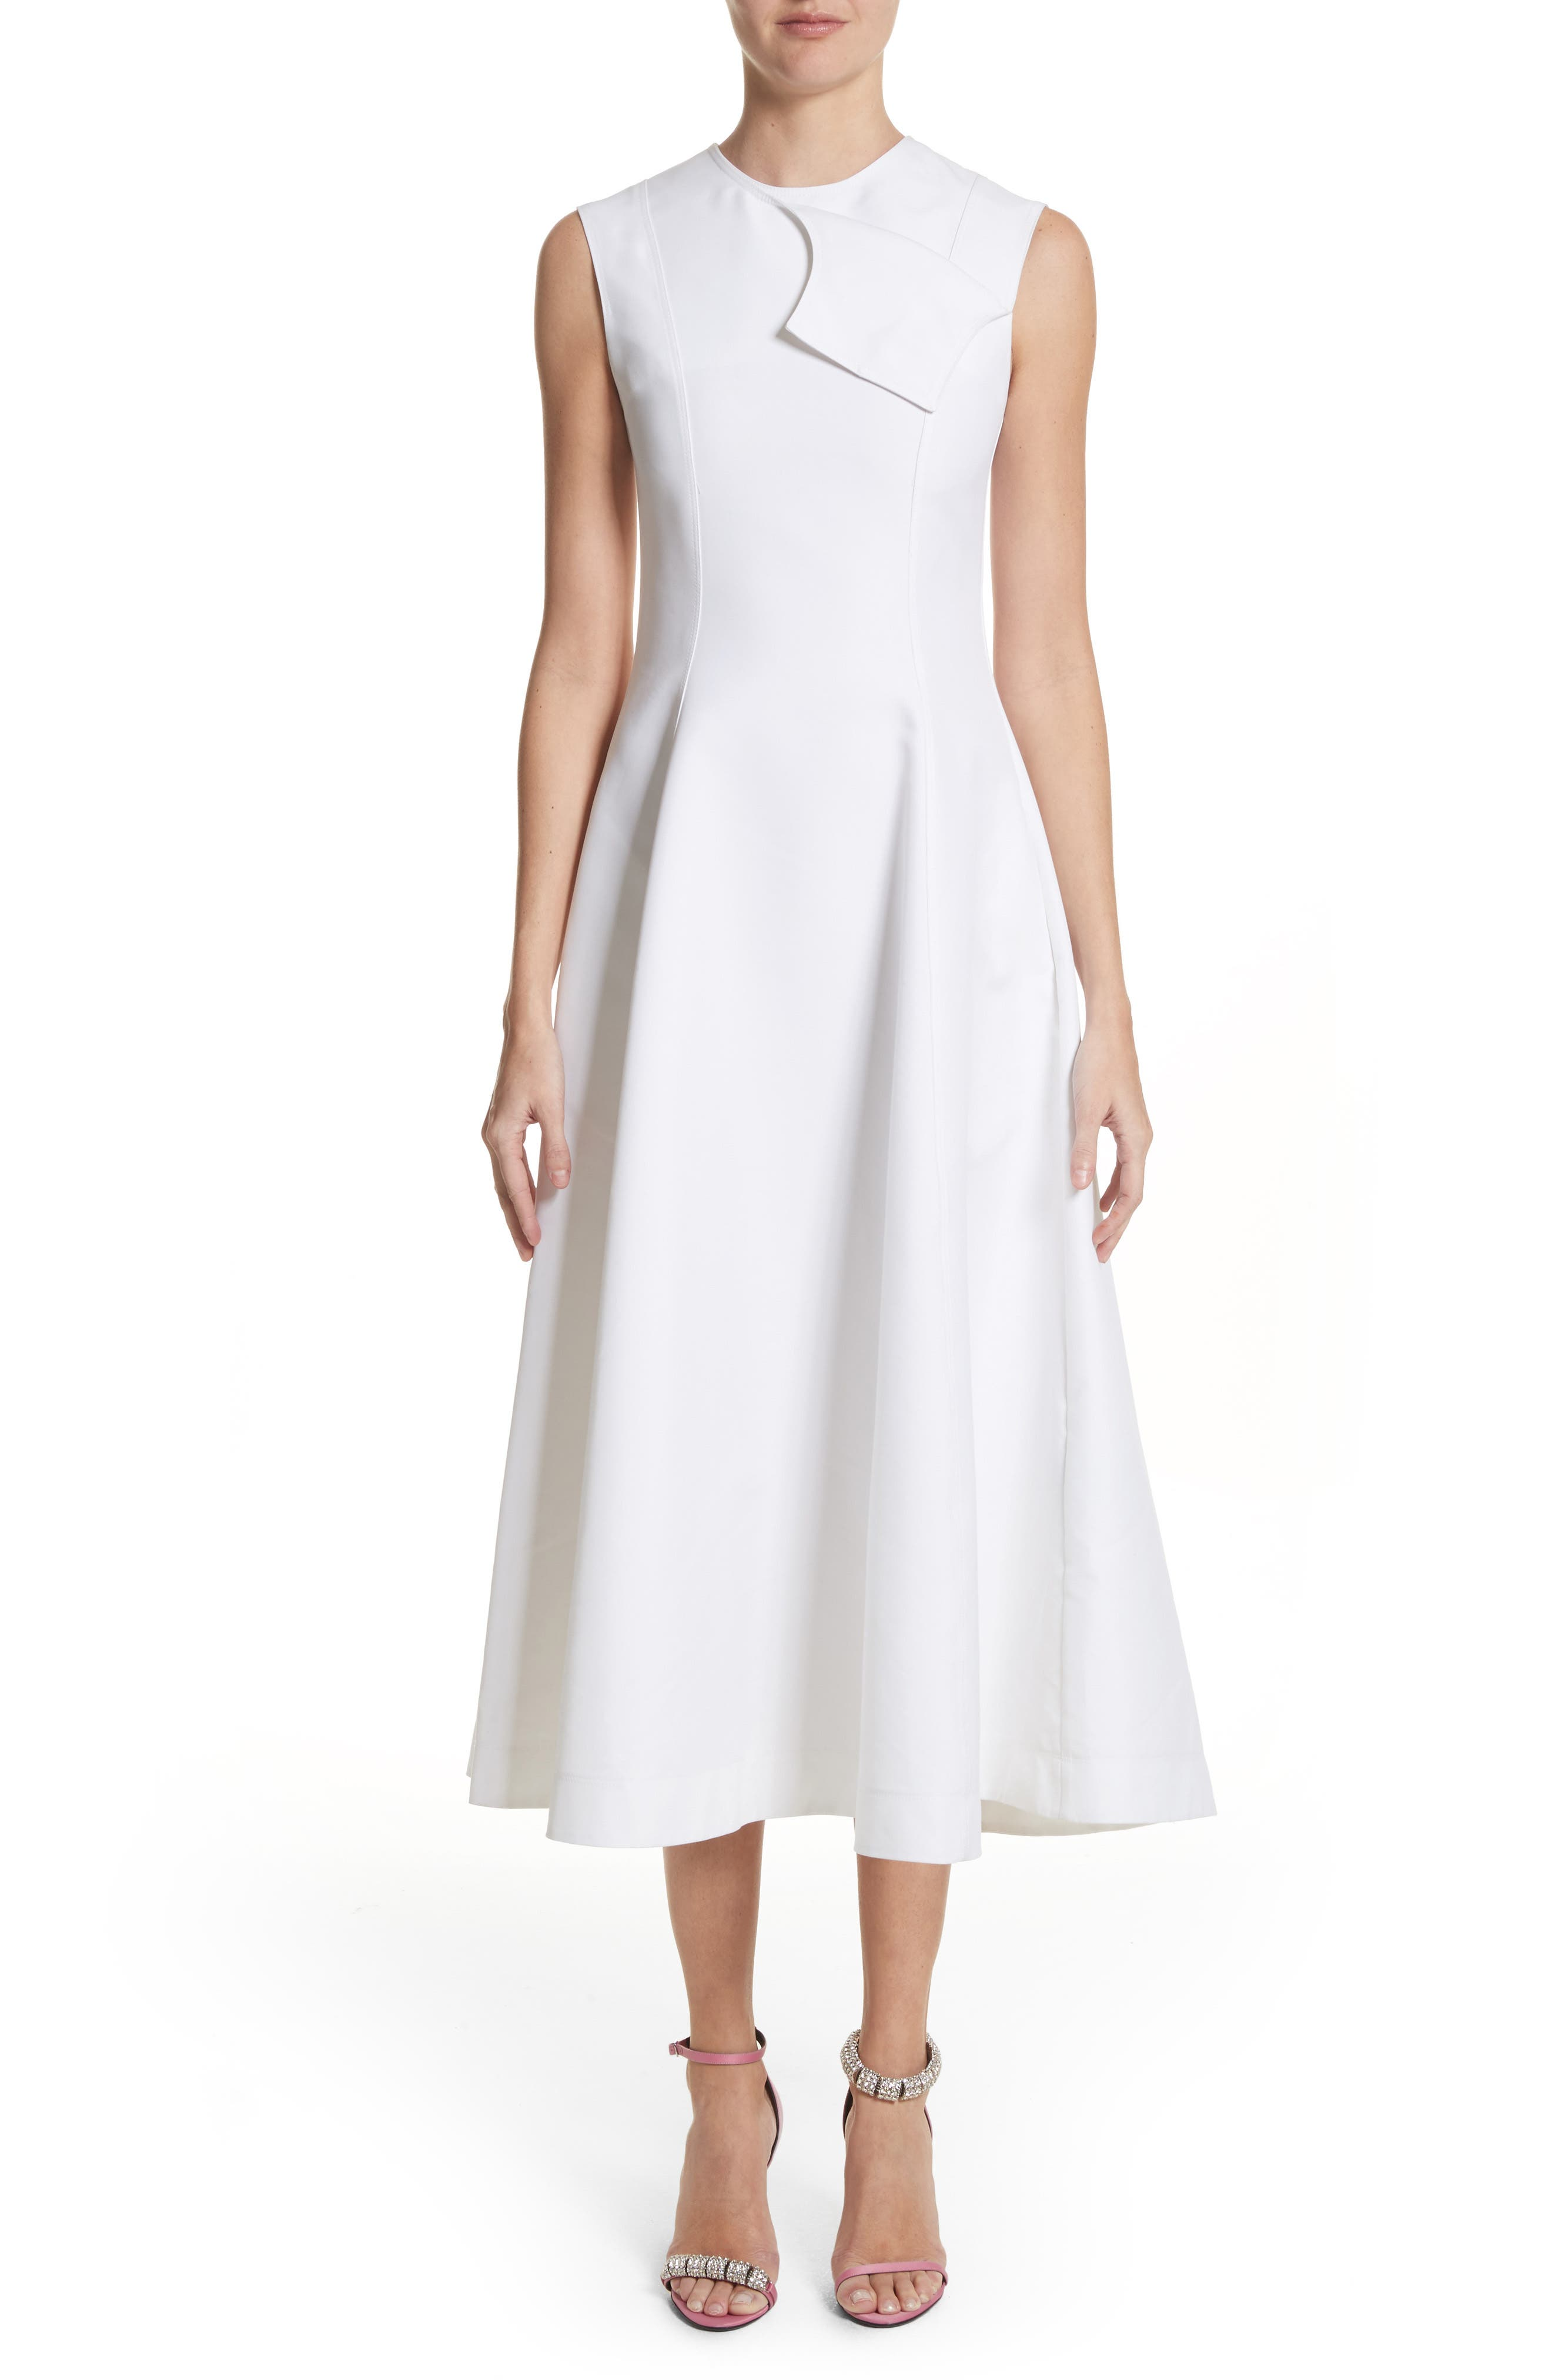 CALVIN KLEIN 205W39NYC Flap Detail A-Line Dress, Main, color, OPTIC WHITE